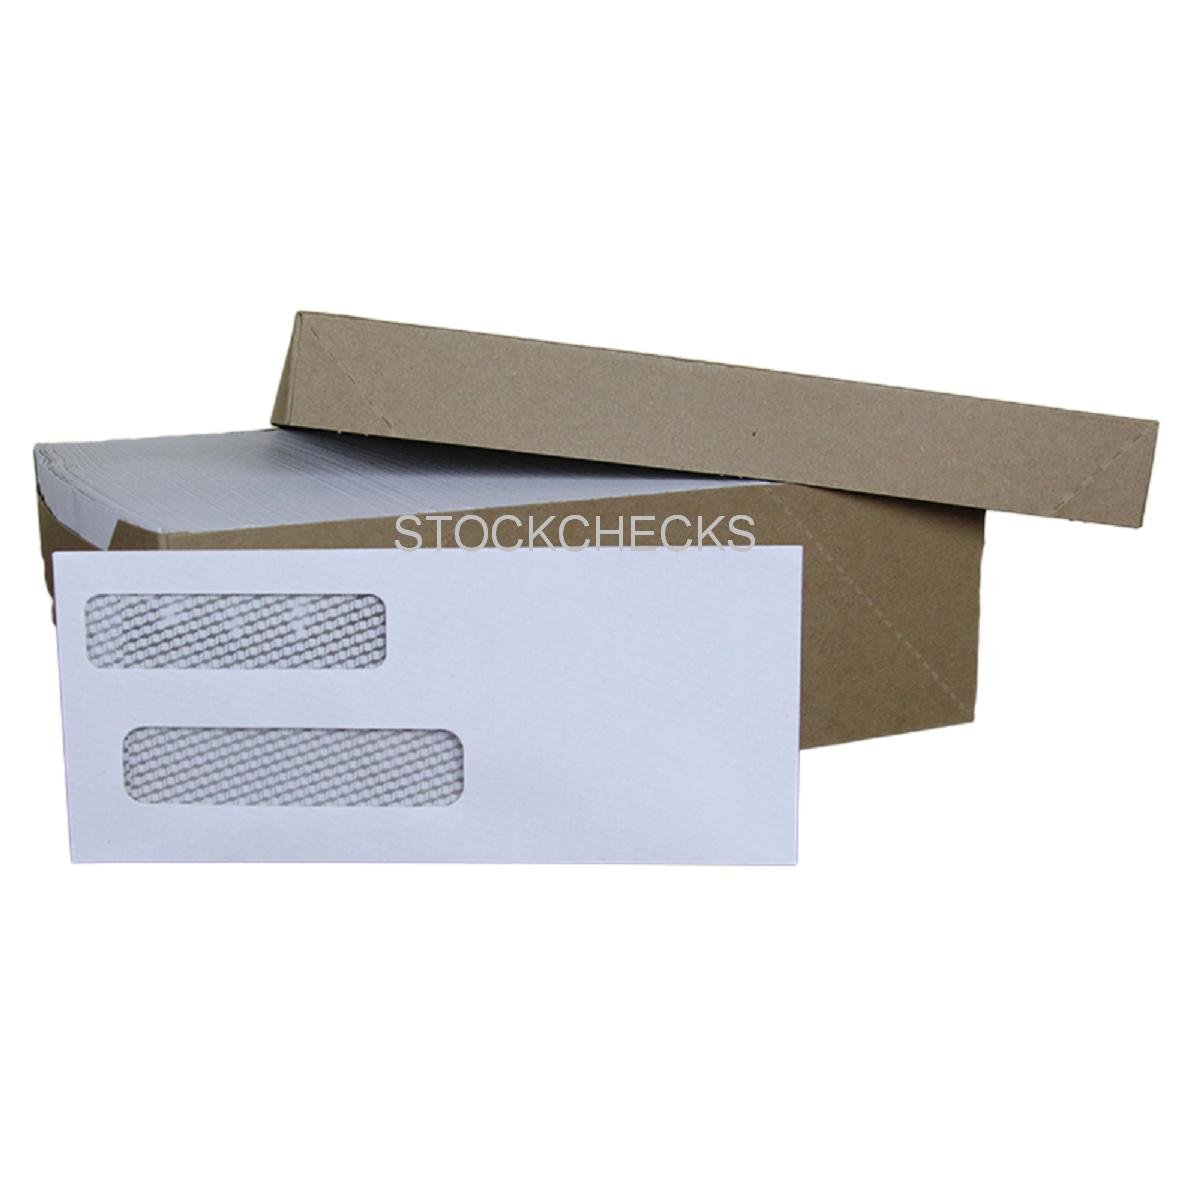 2,500 Double Window Security - Tint Gummed Seal Envelopes: Fits Quicken, Quickbooks, Microsoft Money Checks, Quick Books, Intuit